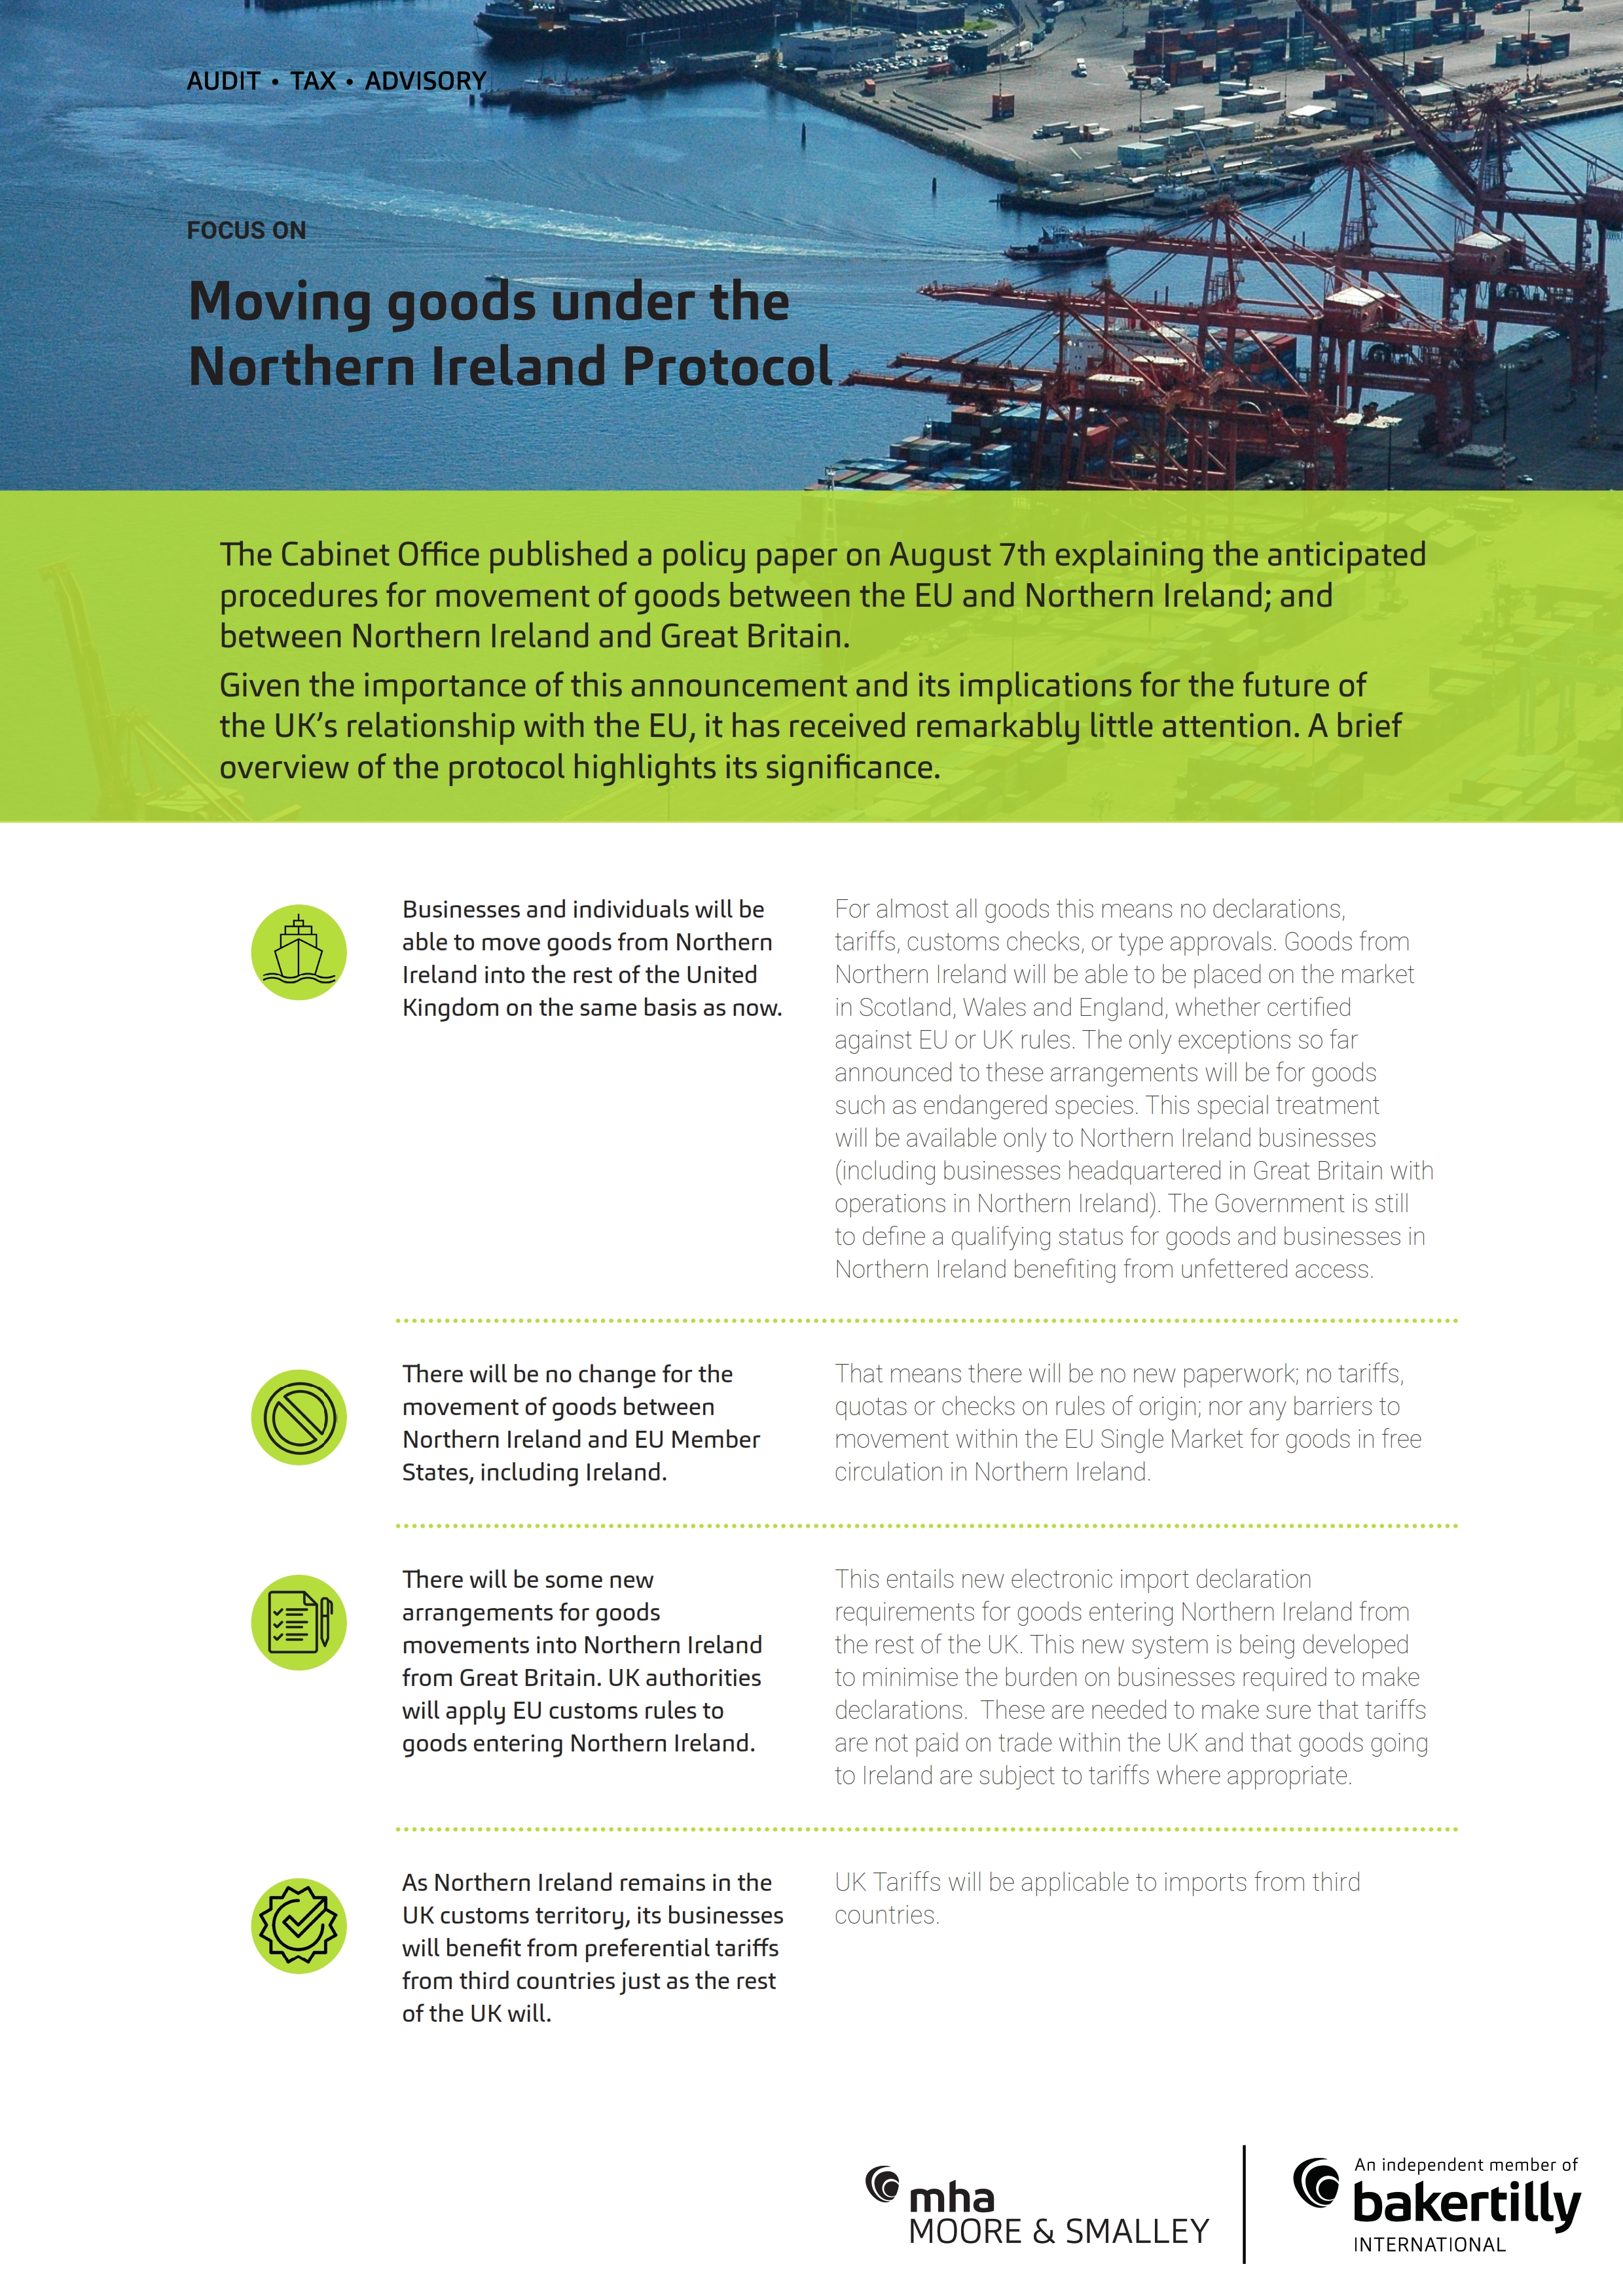 Moving goods under the Northern Ireland Protocol